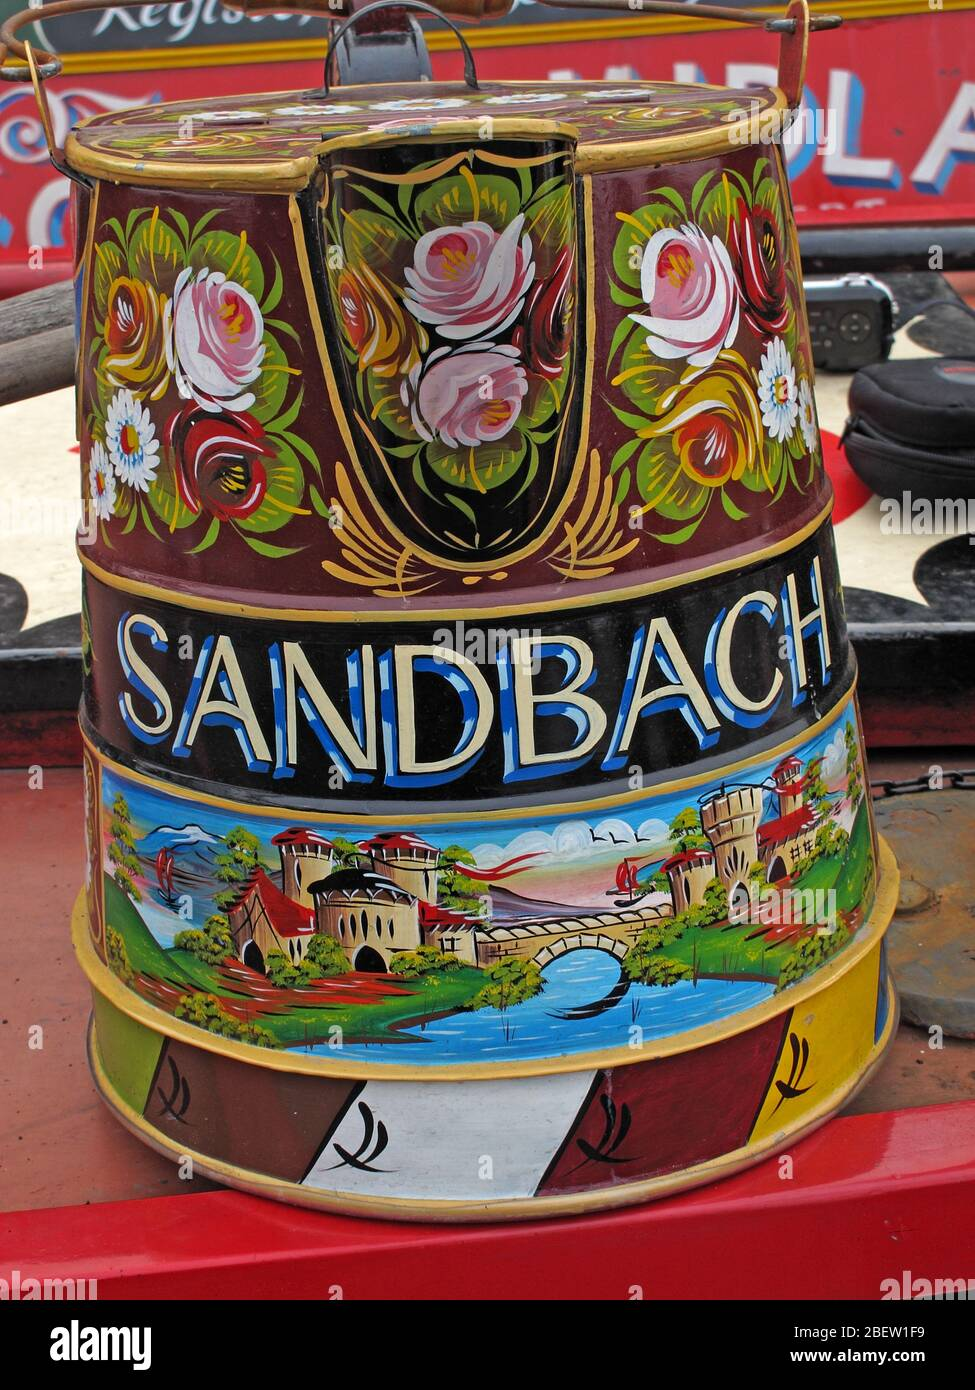 GoTonySmith,@HotpixUK,HotpixUK,color,Village,canal,boat,Trent and Mersey,market town,Sandbach Crosses,Saxon Sandbach Crosses,Sanbec,Sondbache,Sondebache,town council,vessel,Canal waterways bucket,bucket,decorated,colour dedicated to Sandbach,Cheshire,England,UK,Sandbach transport festival,concert series,Sandbach United,Cheshire East Council